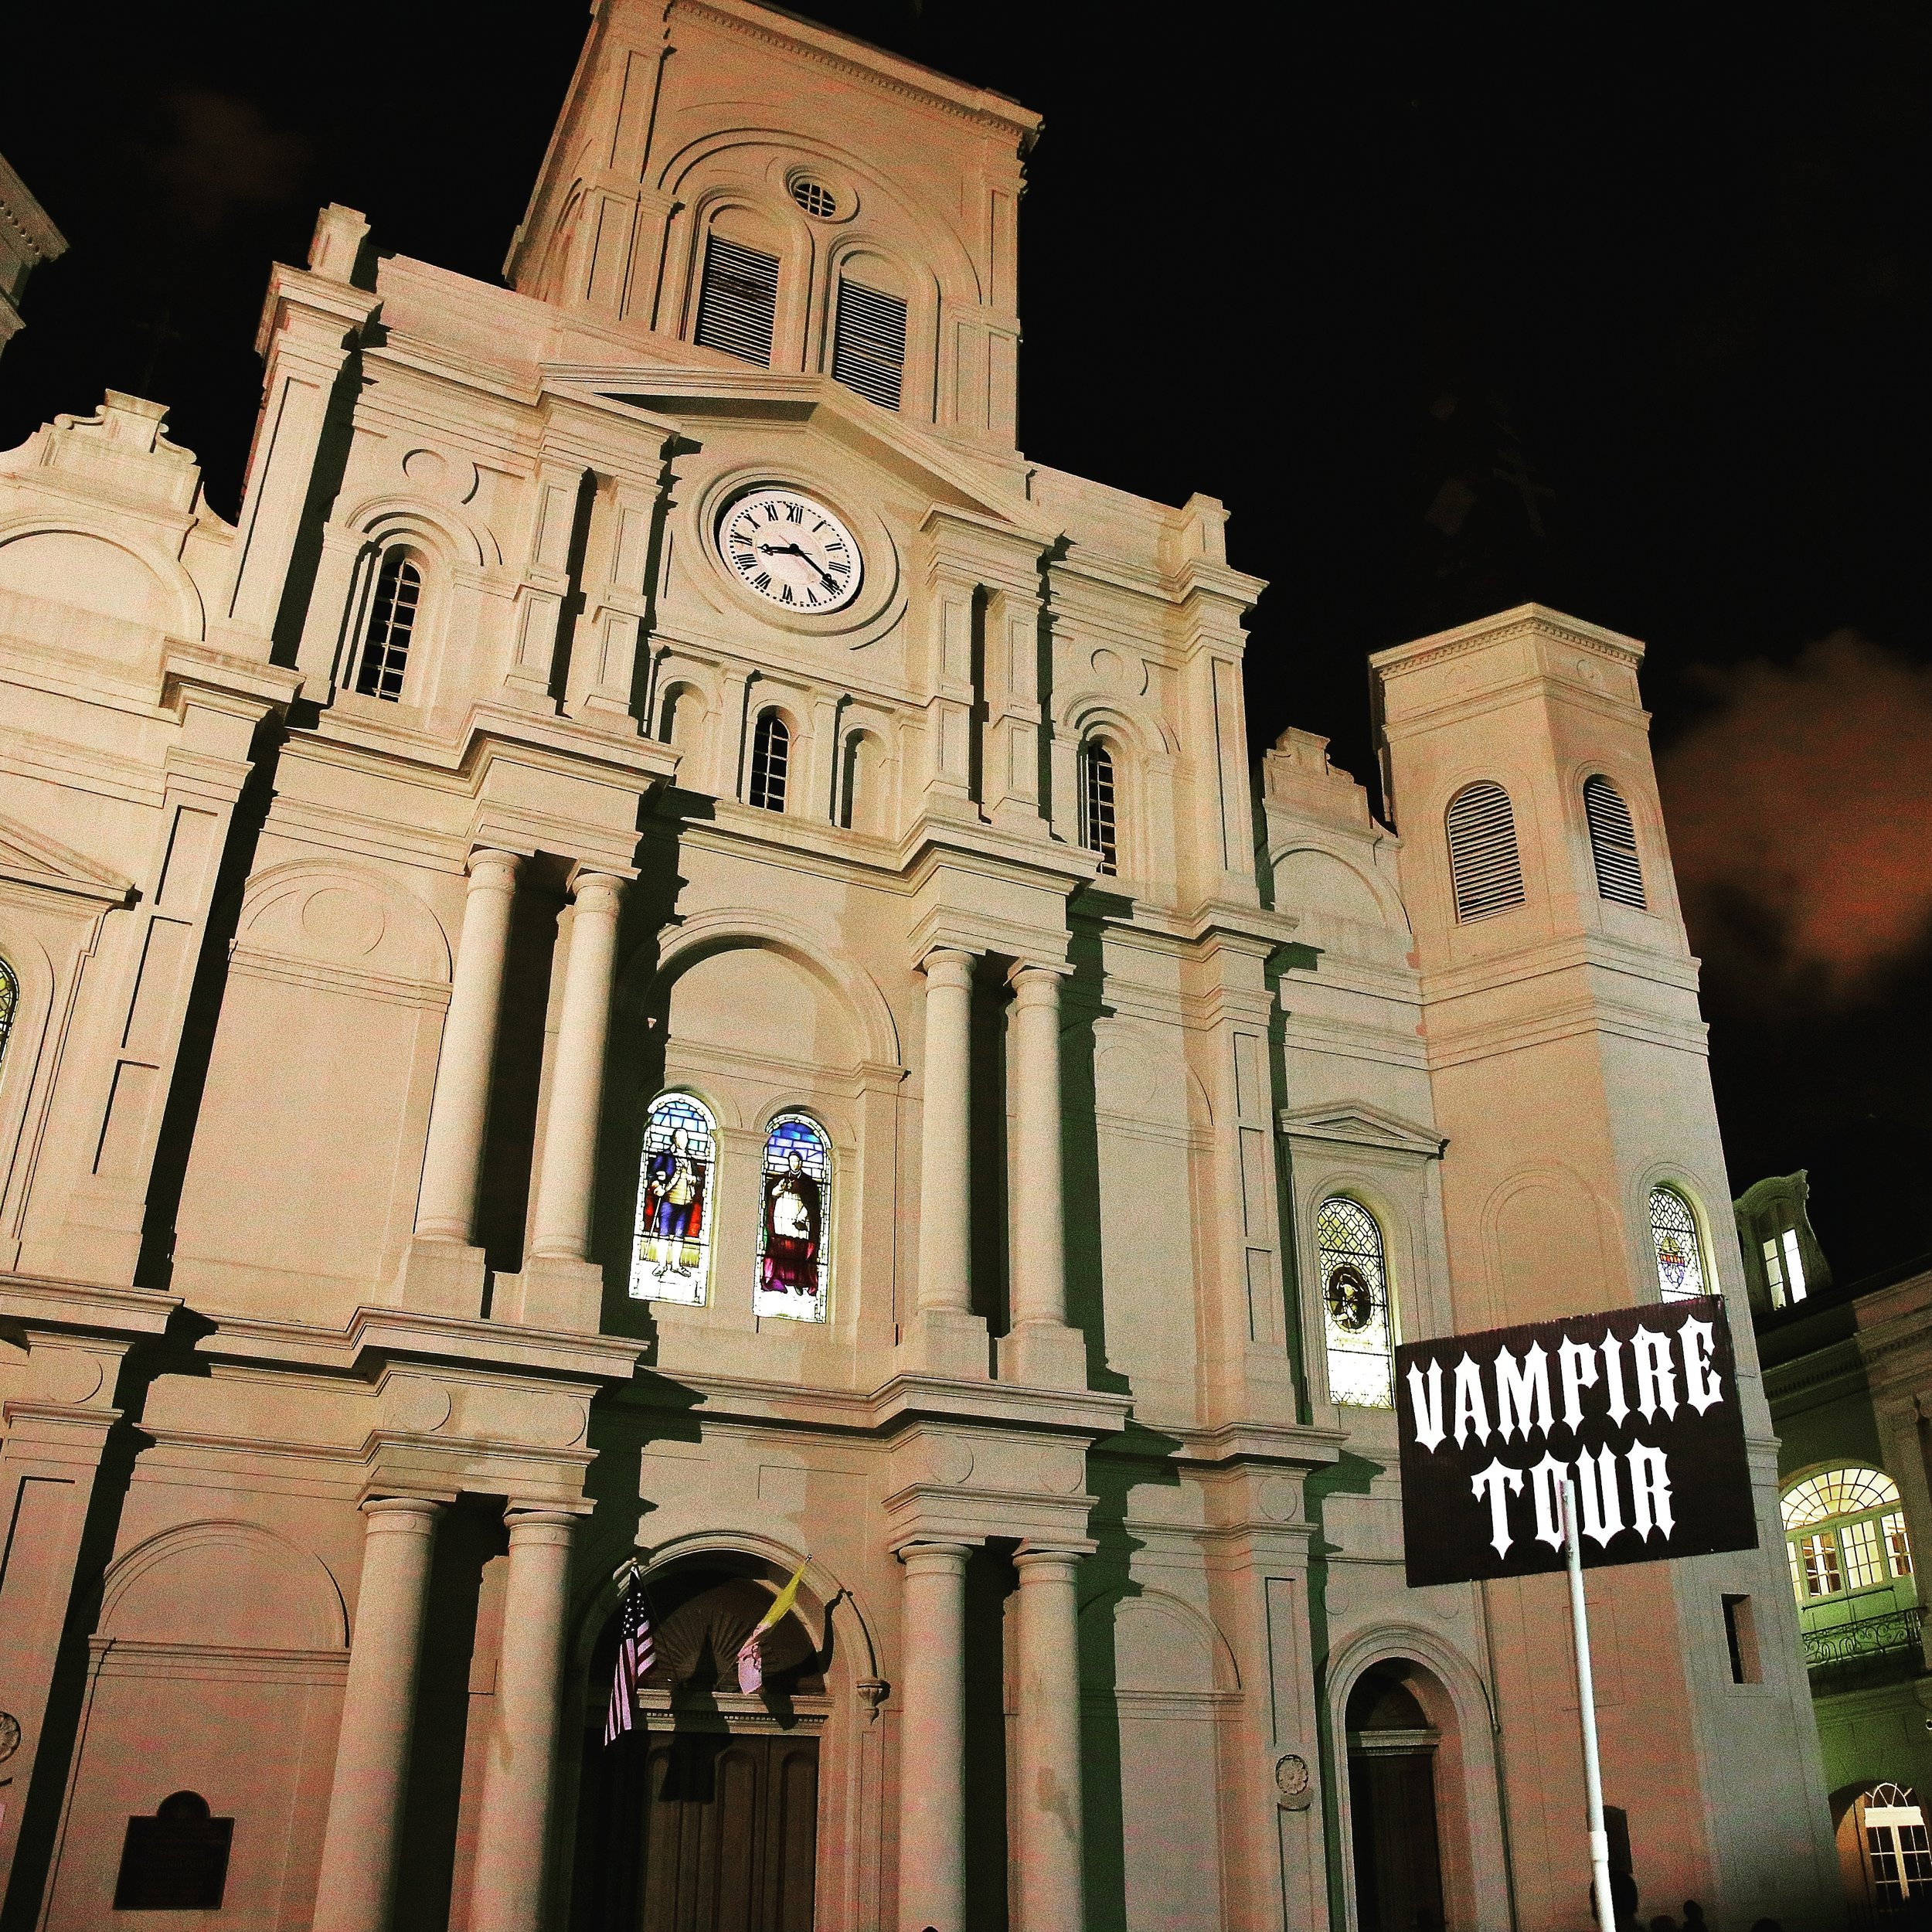 Vampires of the French Quarter Walking Tour - $25 per person. 8:30 p.m. nightly.